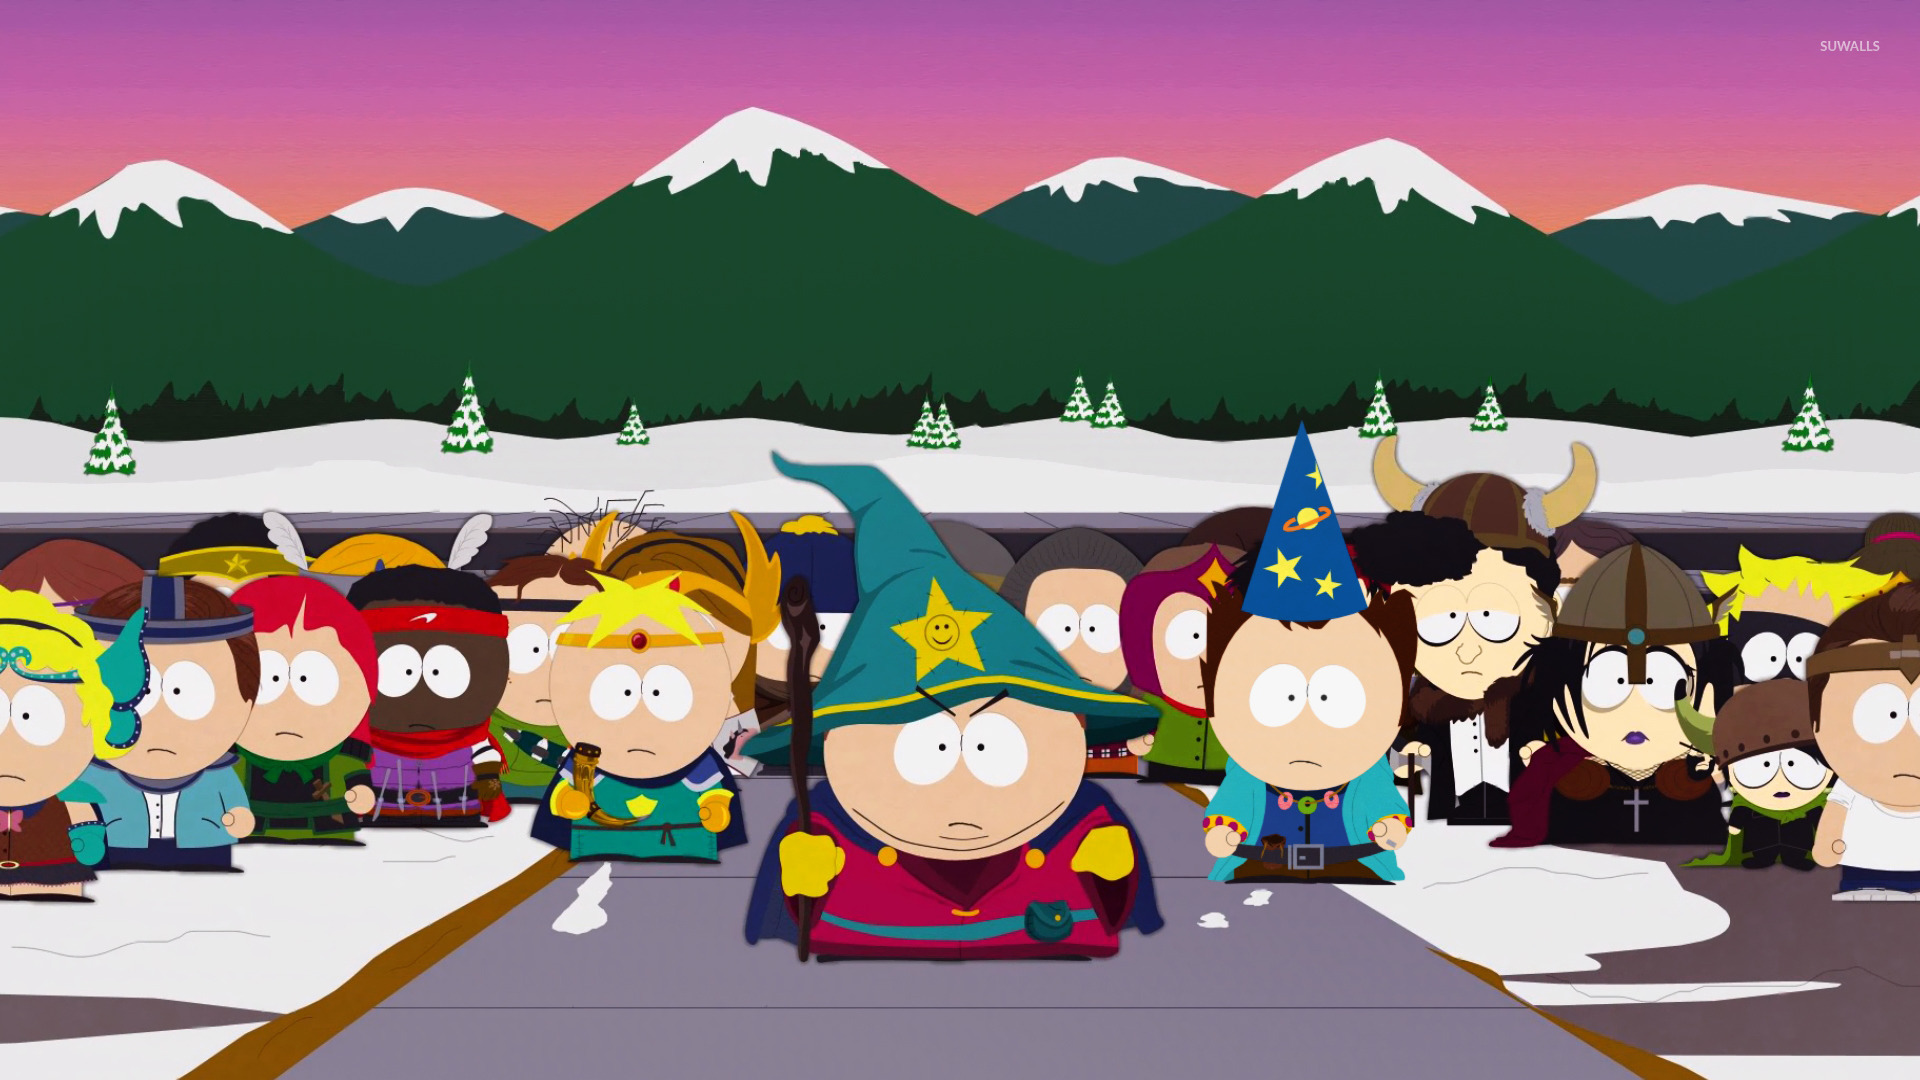 Butters Stotch HD Wallpapers Backgrounds Wallpaper